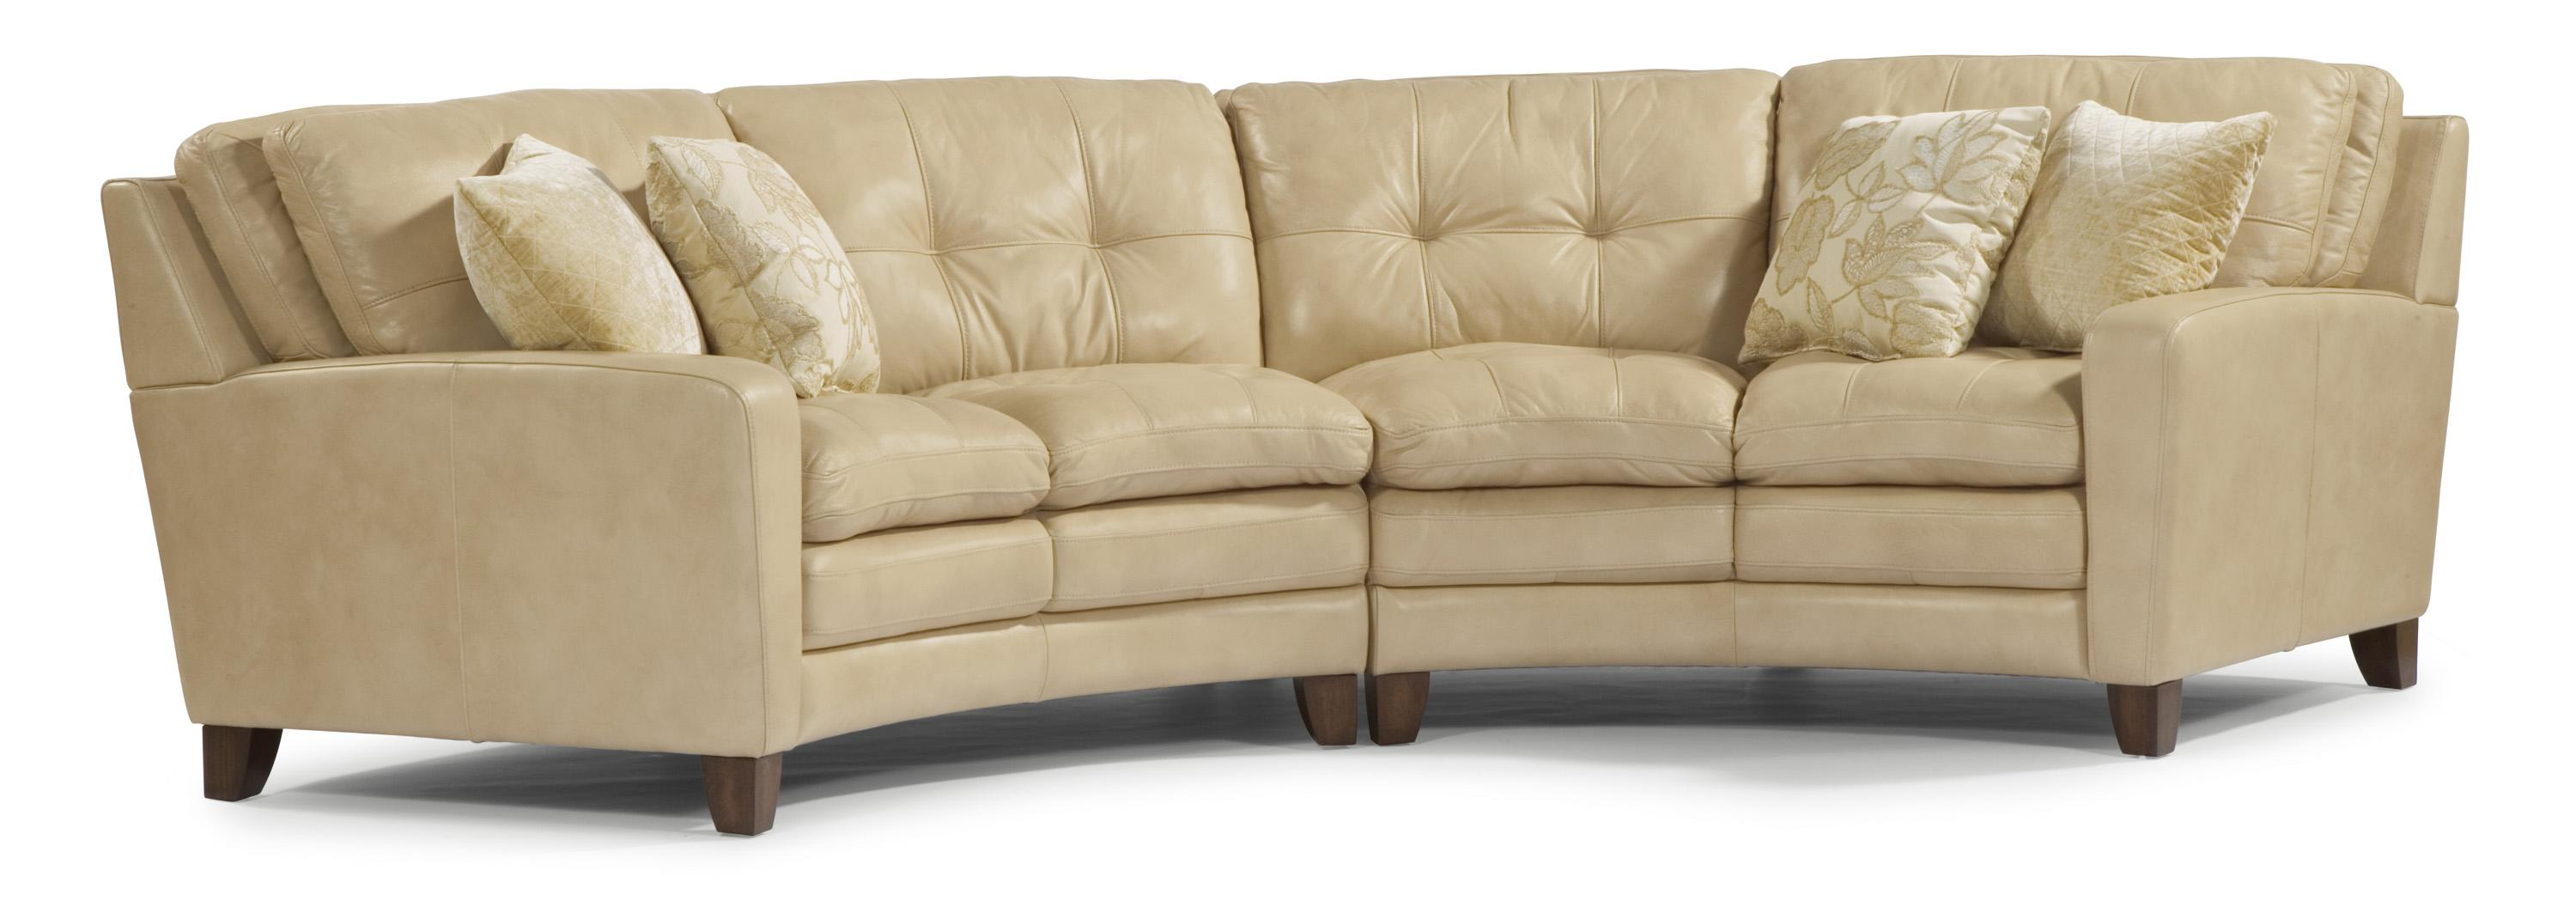 Flexsteel Latitudes South Street Rounded Sectional Sofa With